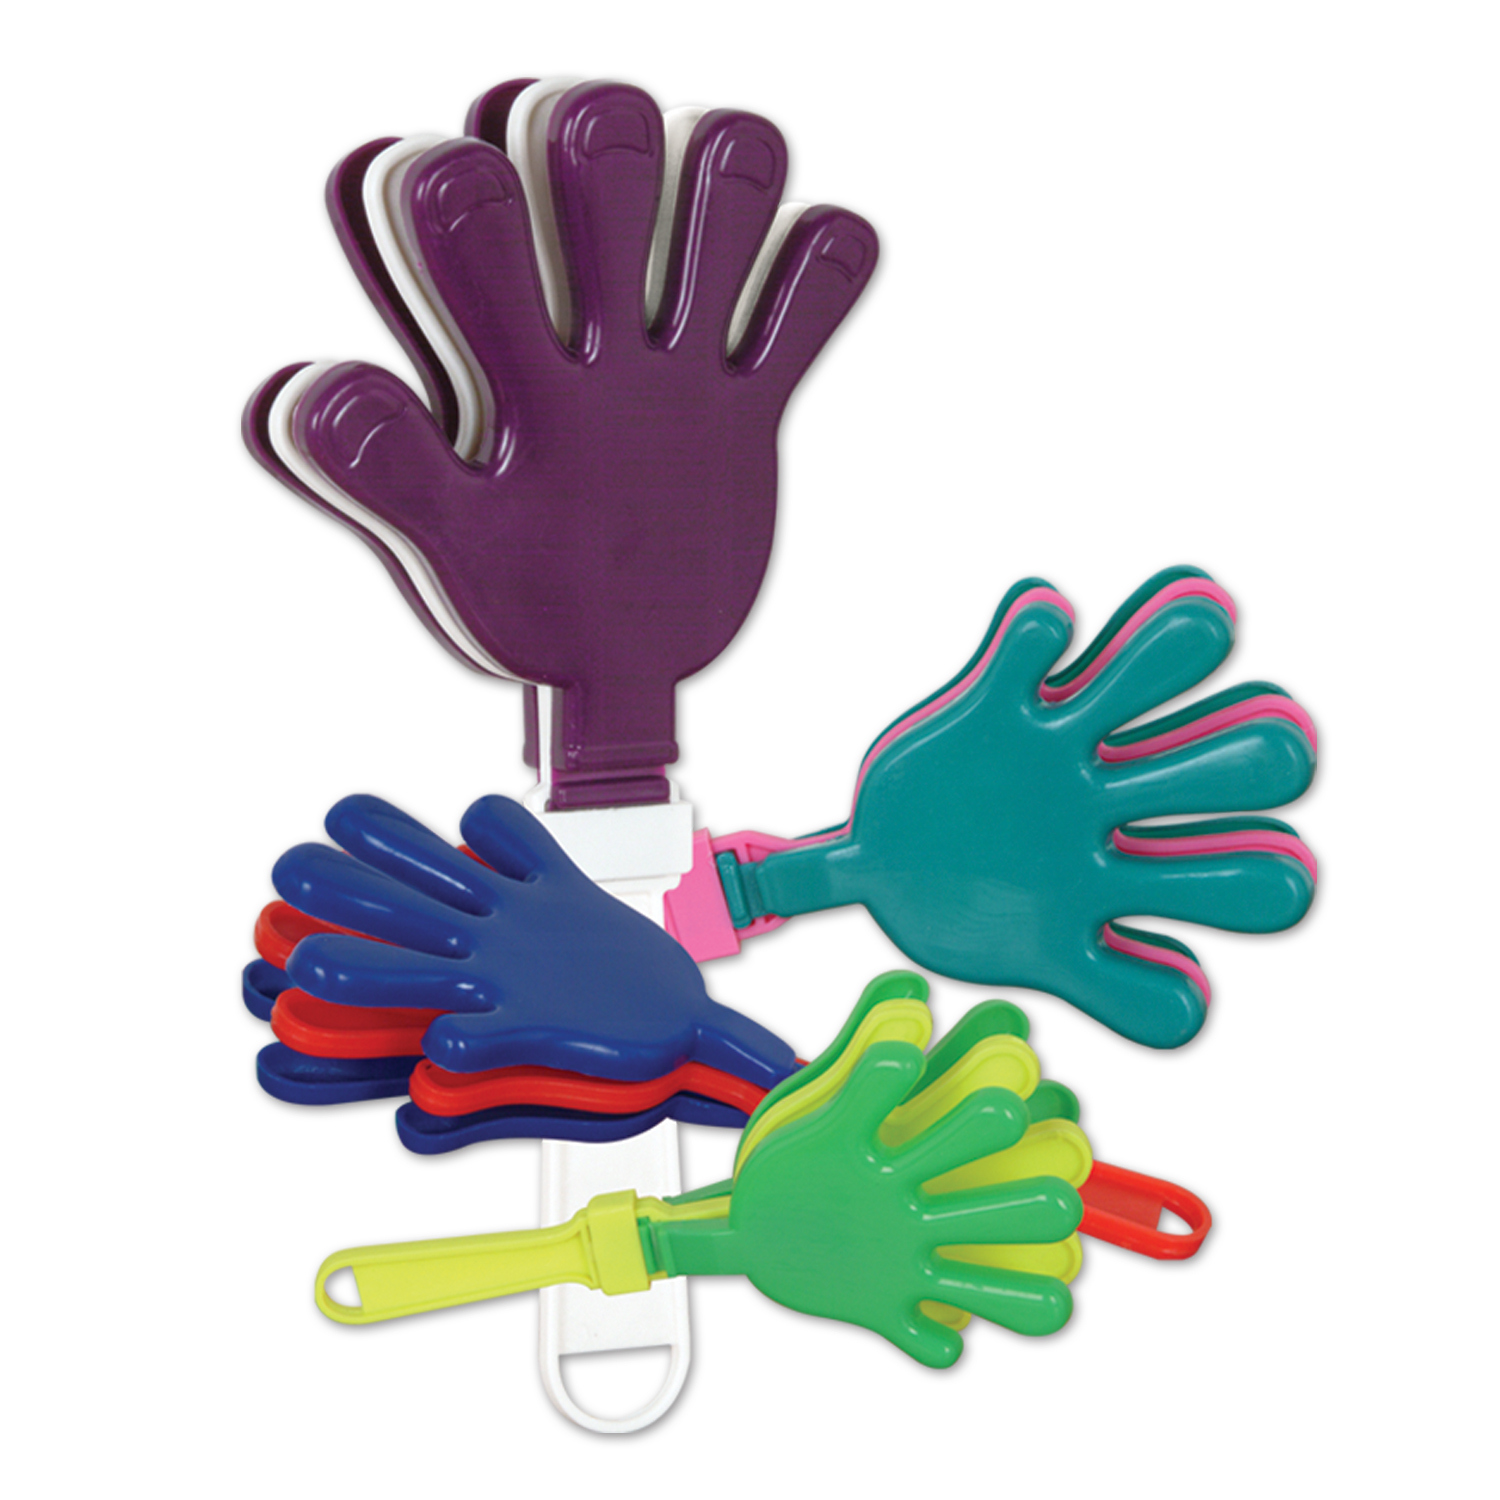 "12"" Hand Clappers (Pack of 12) 12"" Hand Clappers, Game Day, Football Clappers, Hand Clappers, Noisemakers, Cheap party favors, Sports supplies, Wholesale party supplies, Inexpensive party favors, Cheap noiseamakers, Game Day party supplies, Birthday party supplies, New Years EVe"